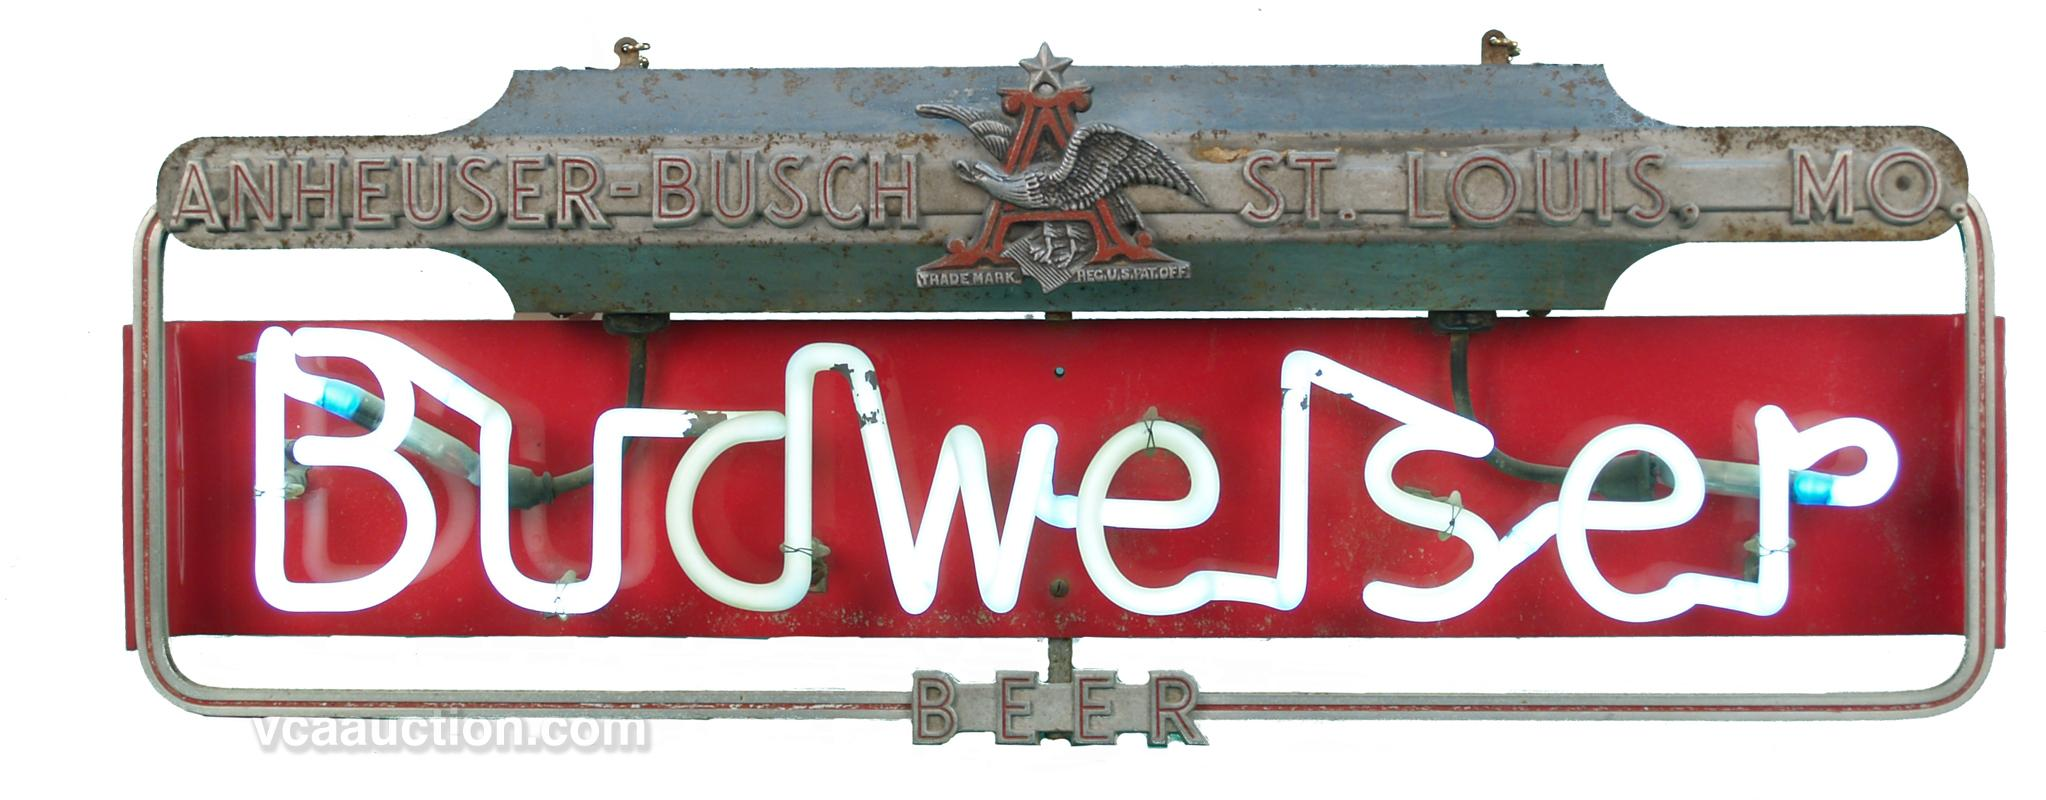 Early Budweiser Neon Sign - 27